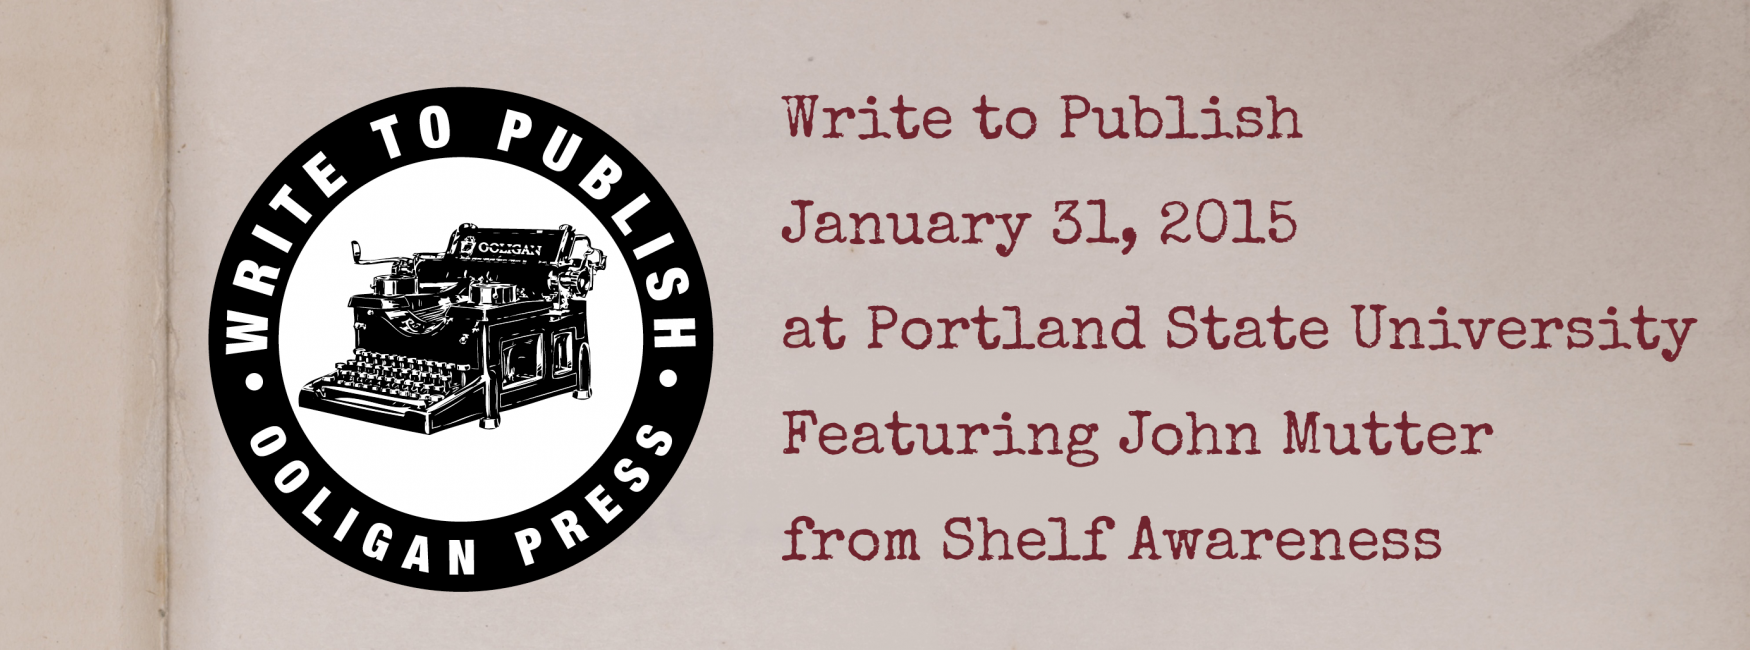 Write to Publish 2015